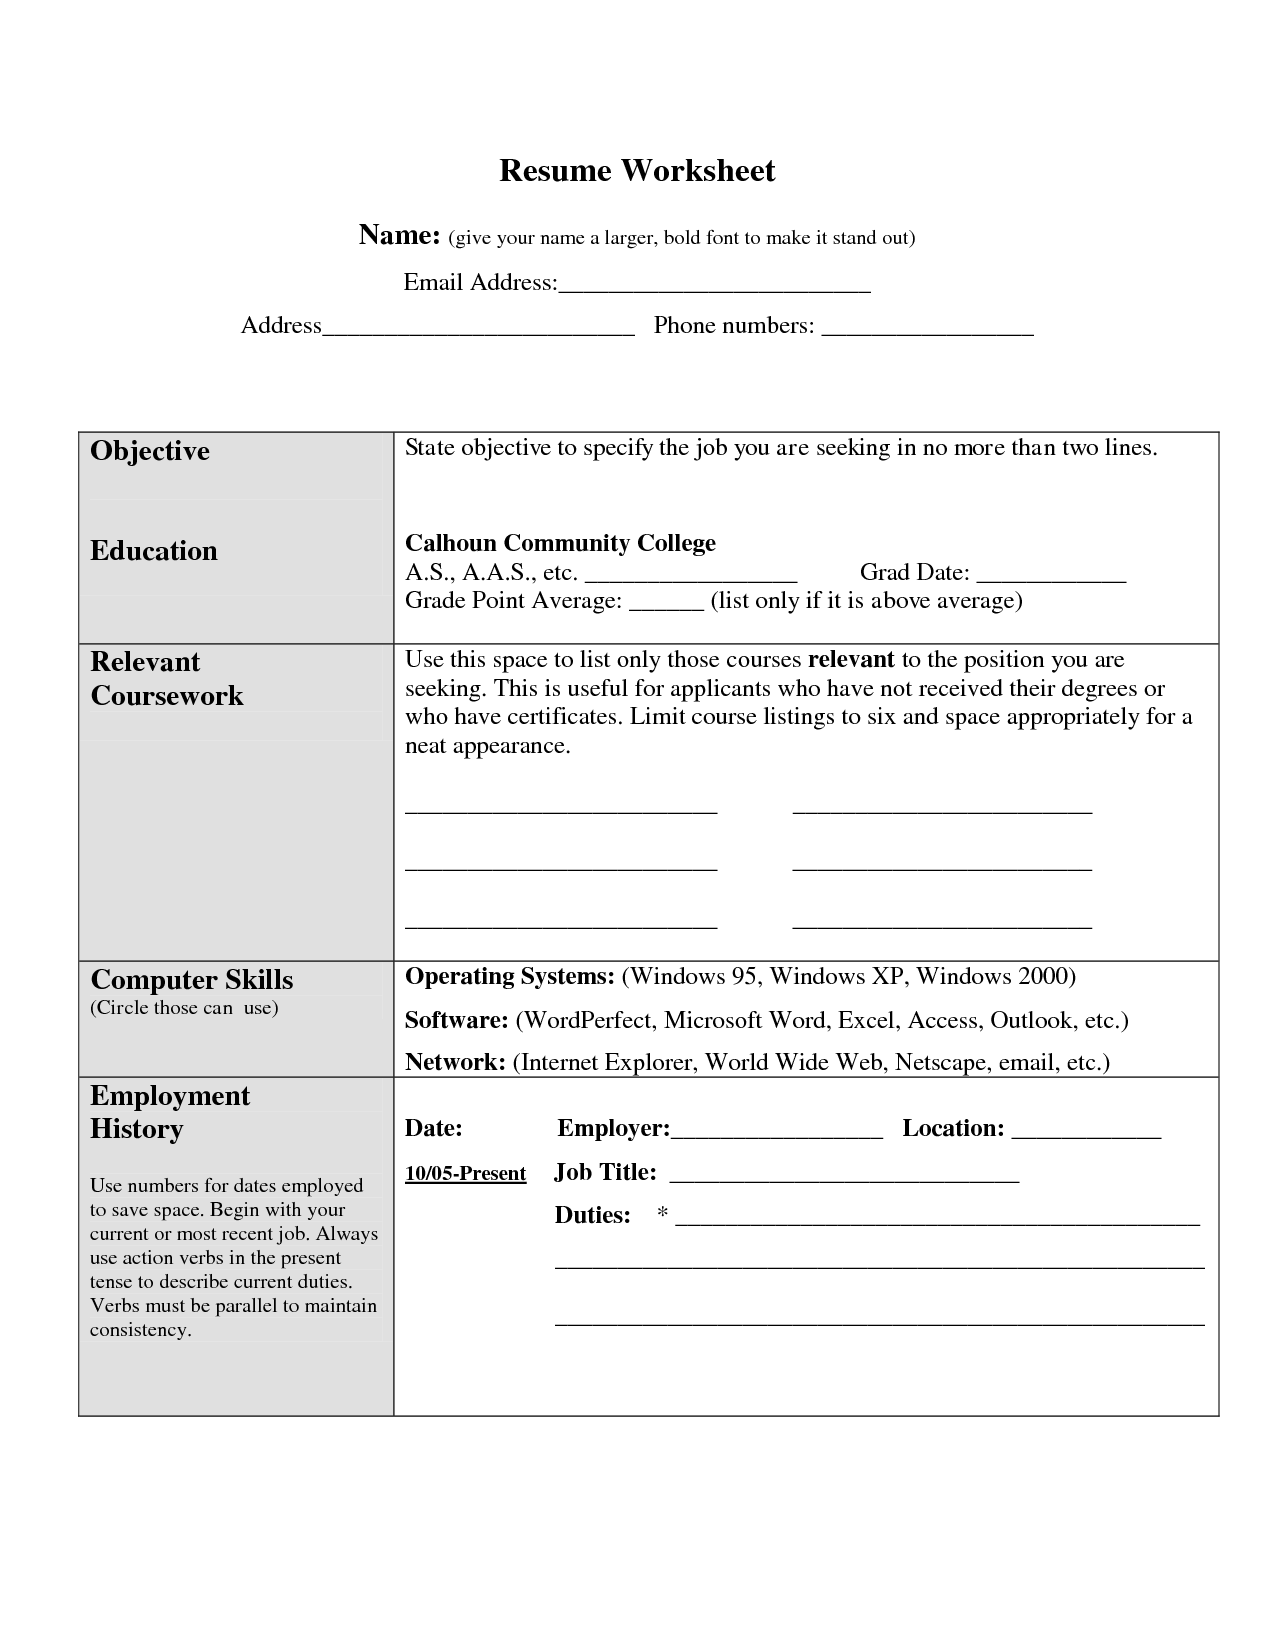 building a resume worksheet resume format examples building a resume worksheet resume writing worksheet uw green bay resume worksheet printable resume worksheet and